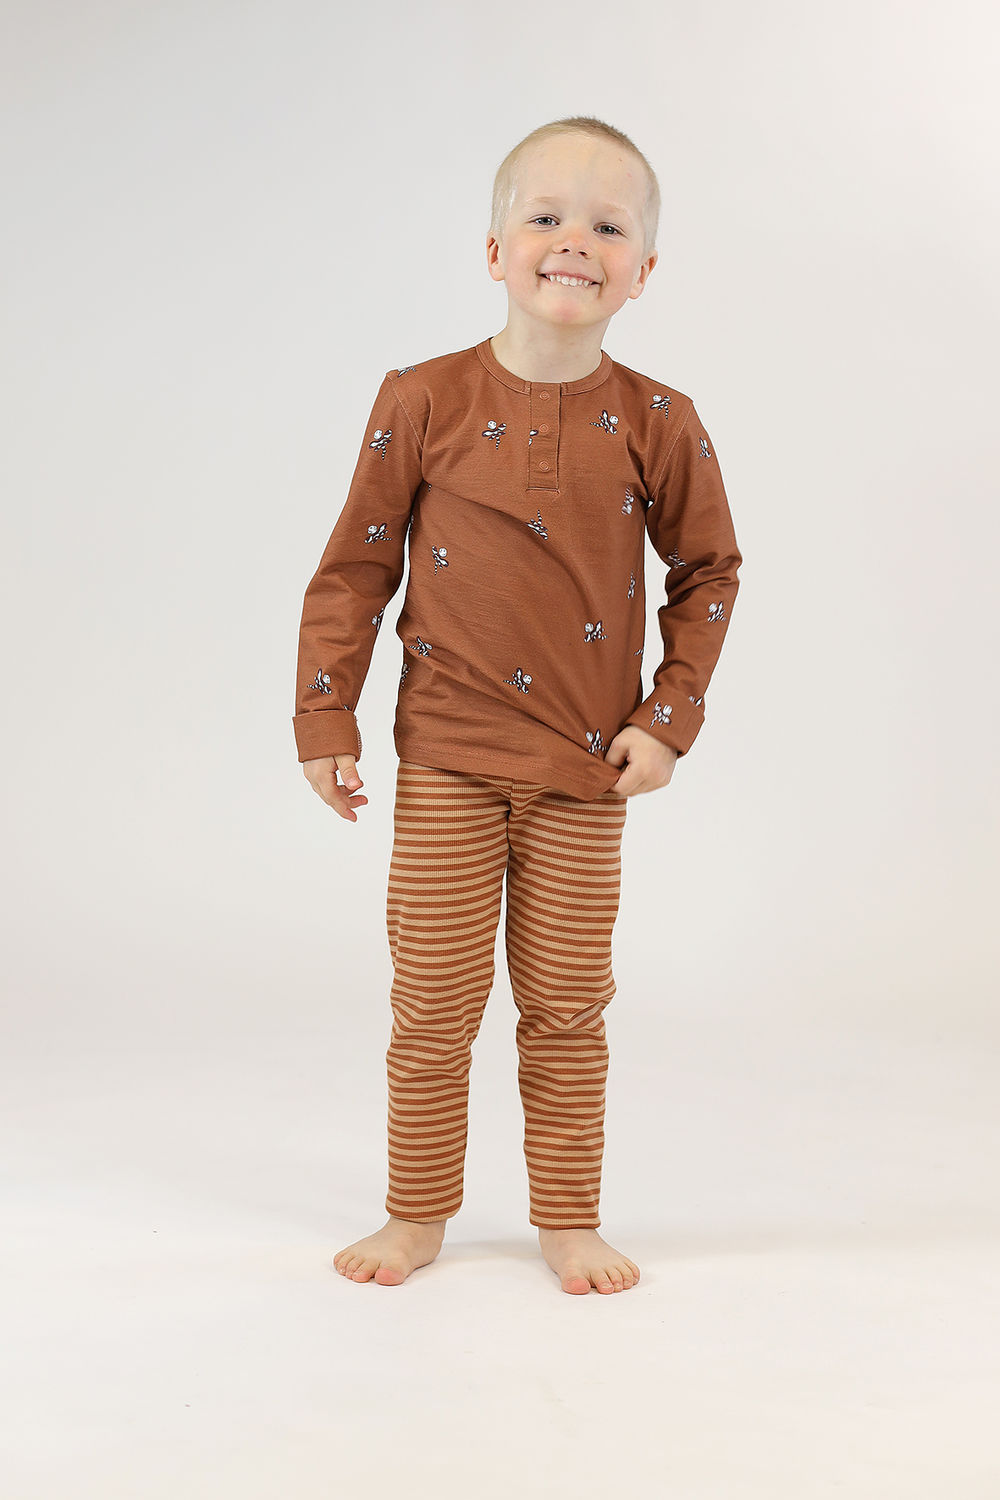 PARIS Leggingsit, Stripe Brown